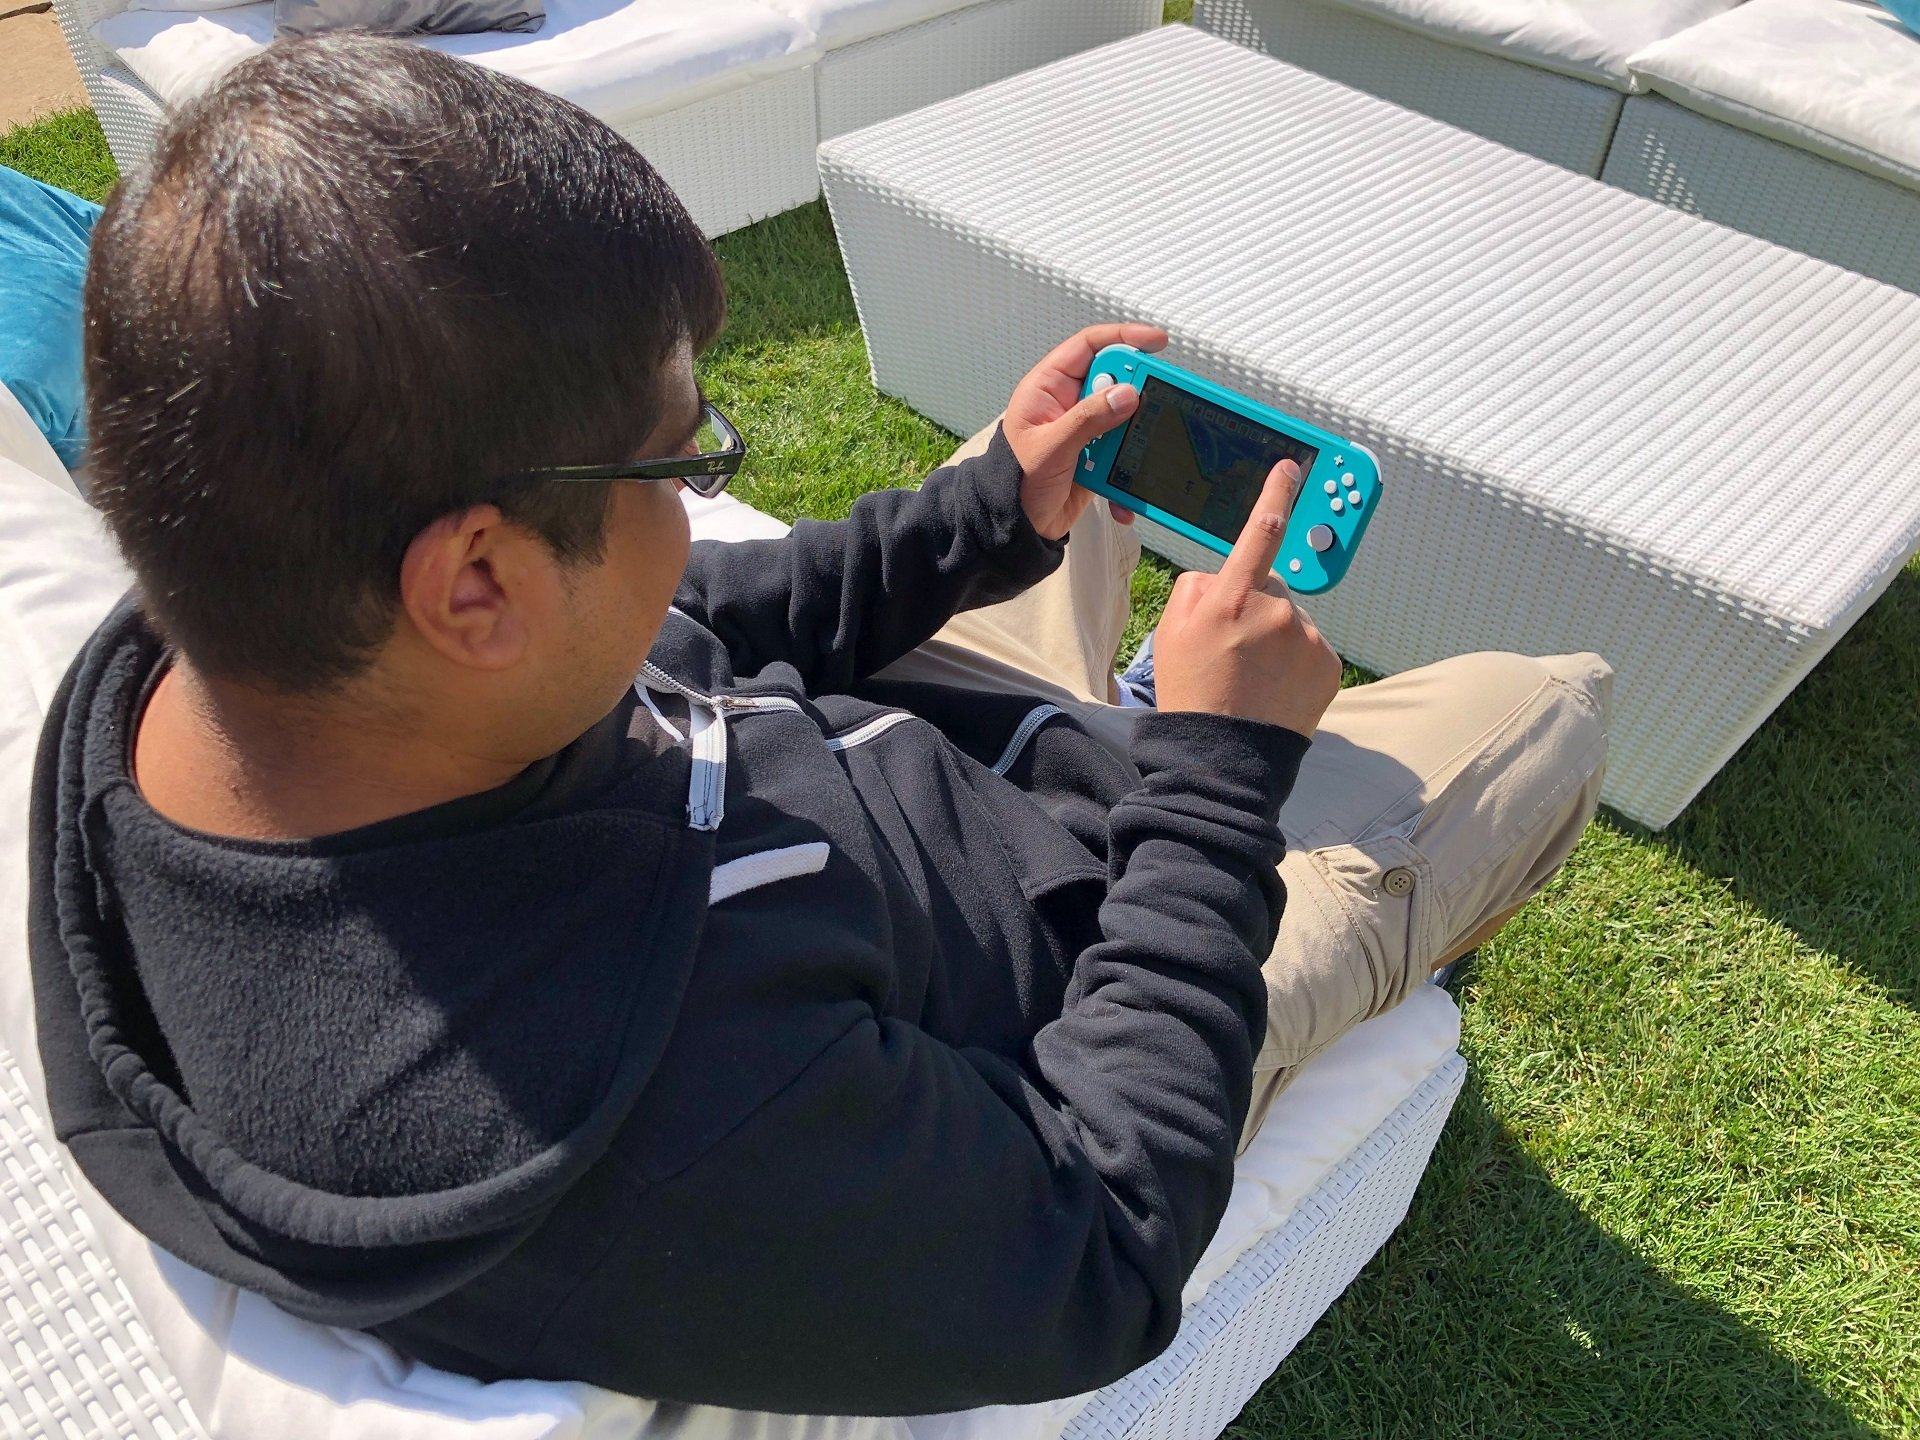 There were some issues with glare while playing the Switch Lite outside, but nothing out of the ordinary.